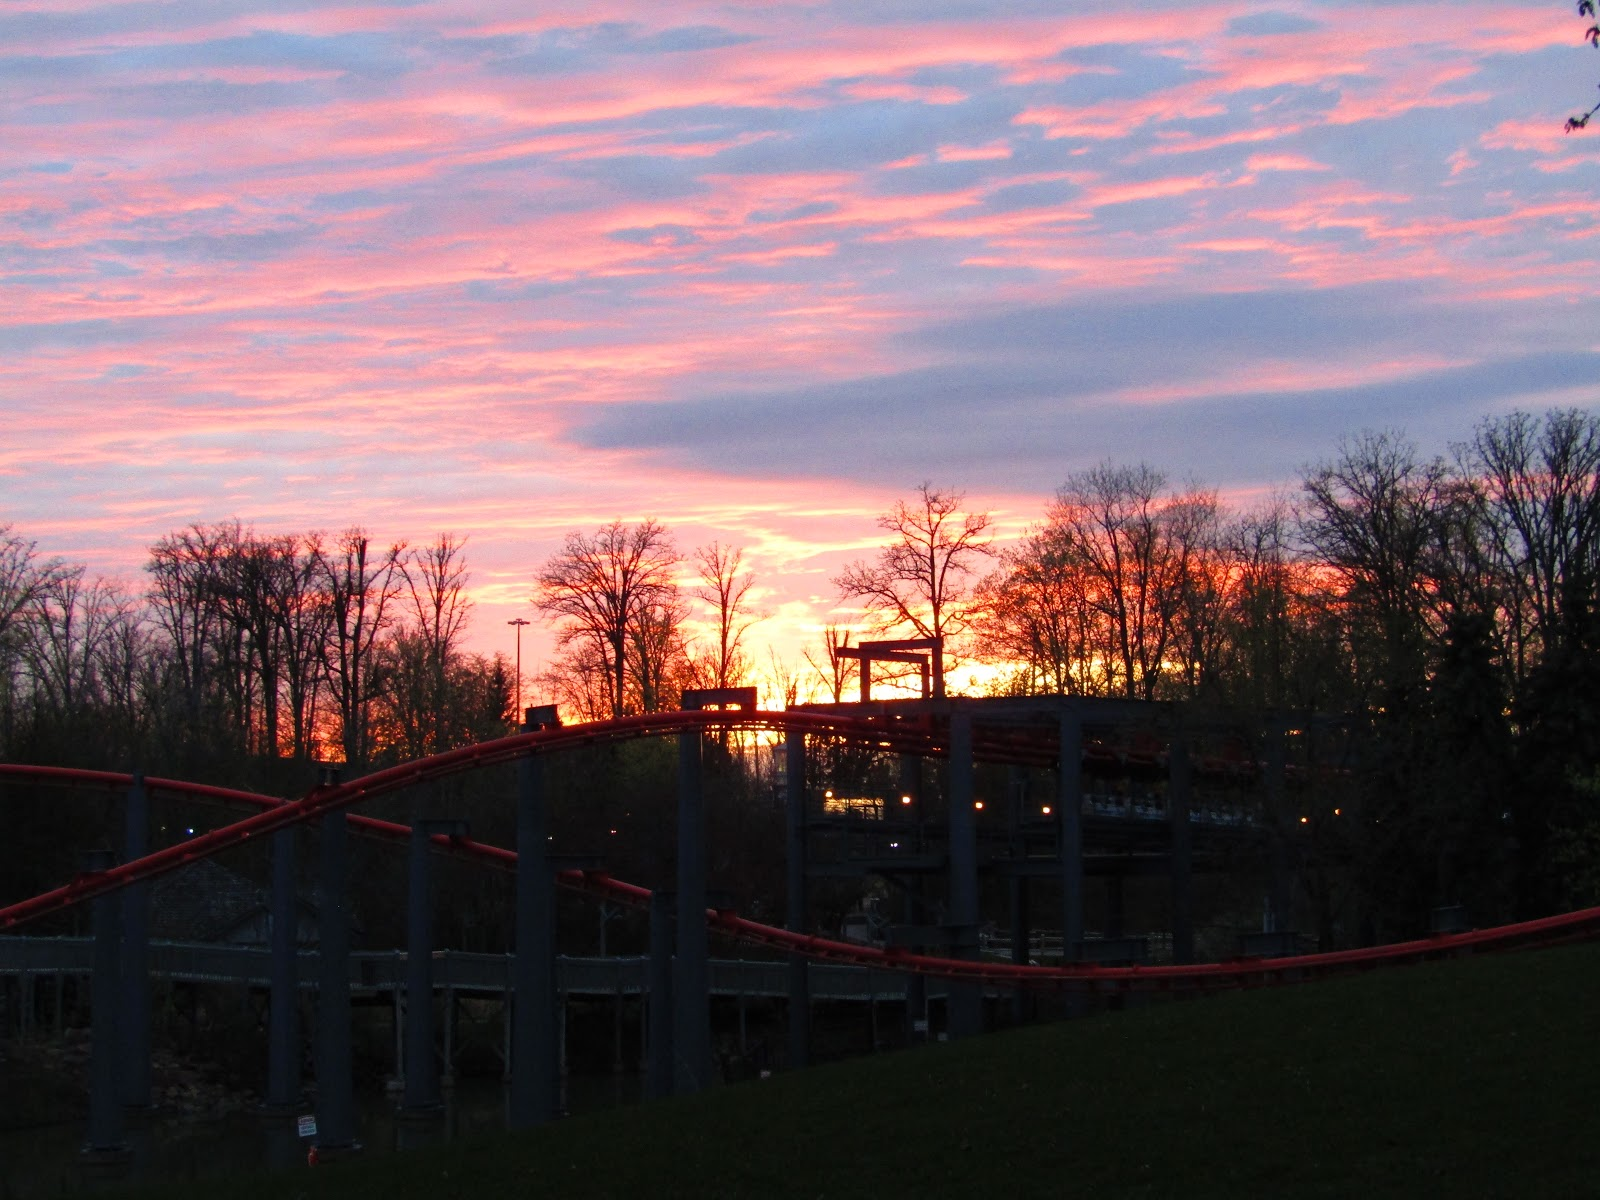 A beautiful sunset provides an orange glow on the beautiful landscape at Canada's Wonderland. The sky is orange and pink with some wavy clouds.